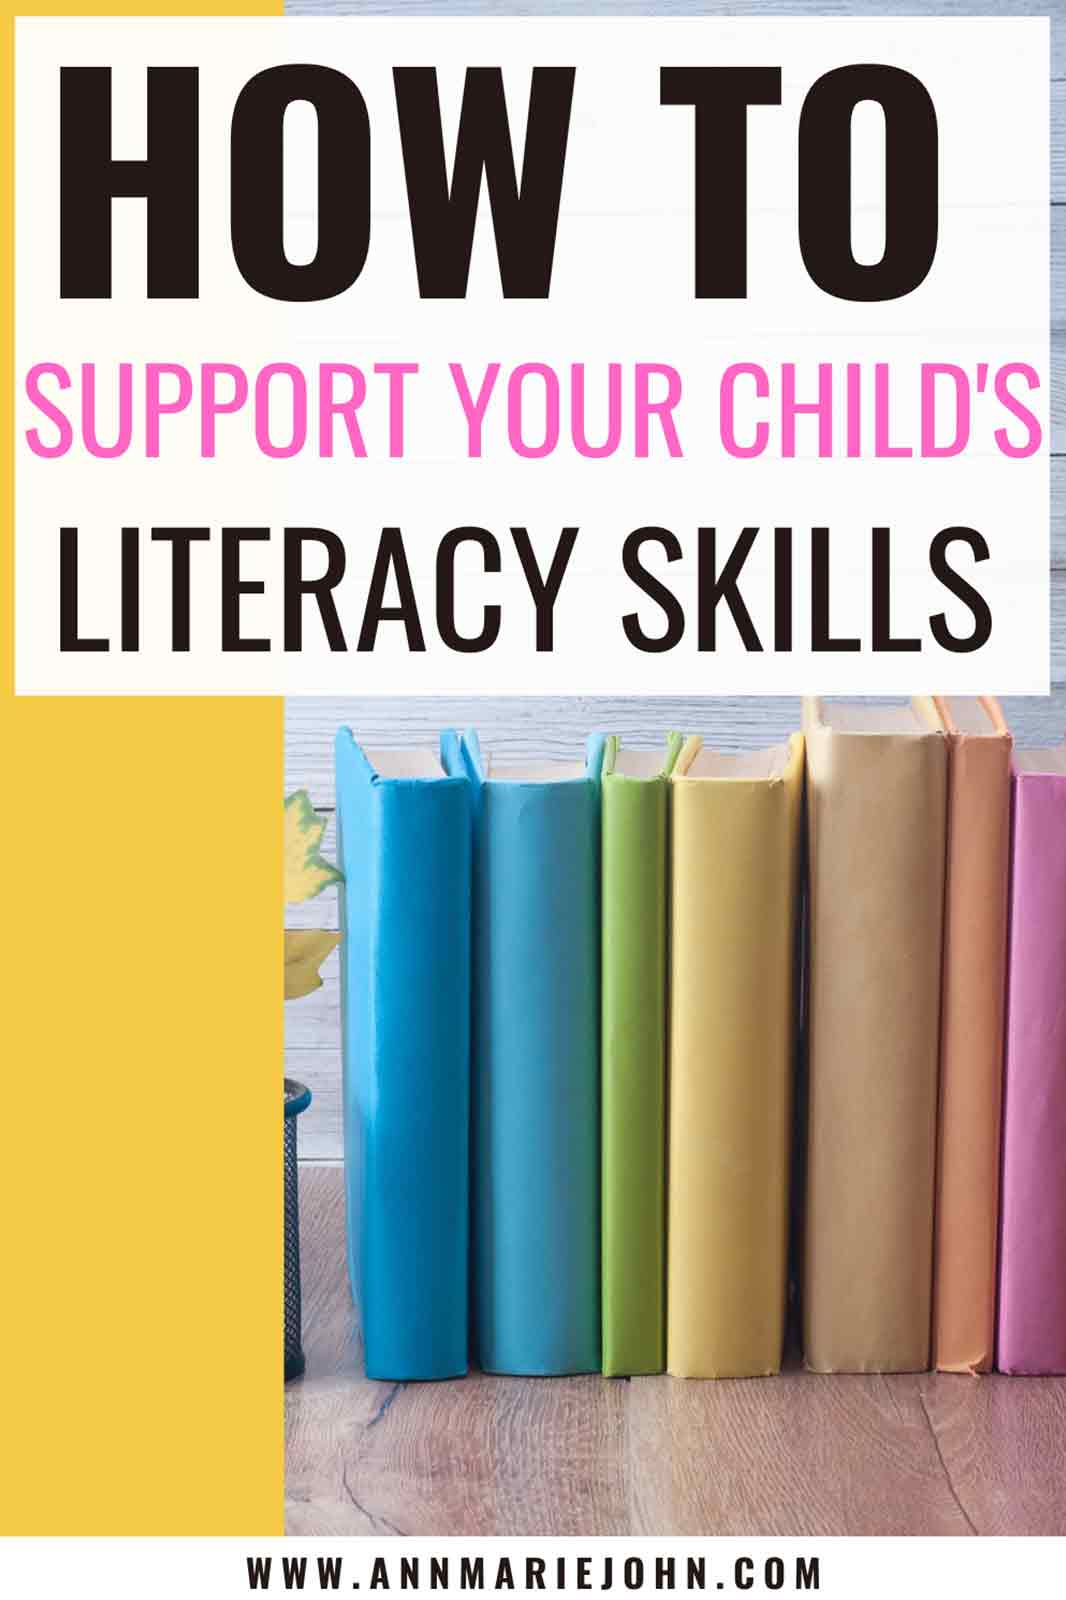 How to Support Your Childs Literacy Skills